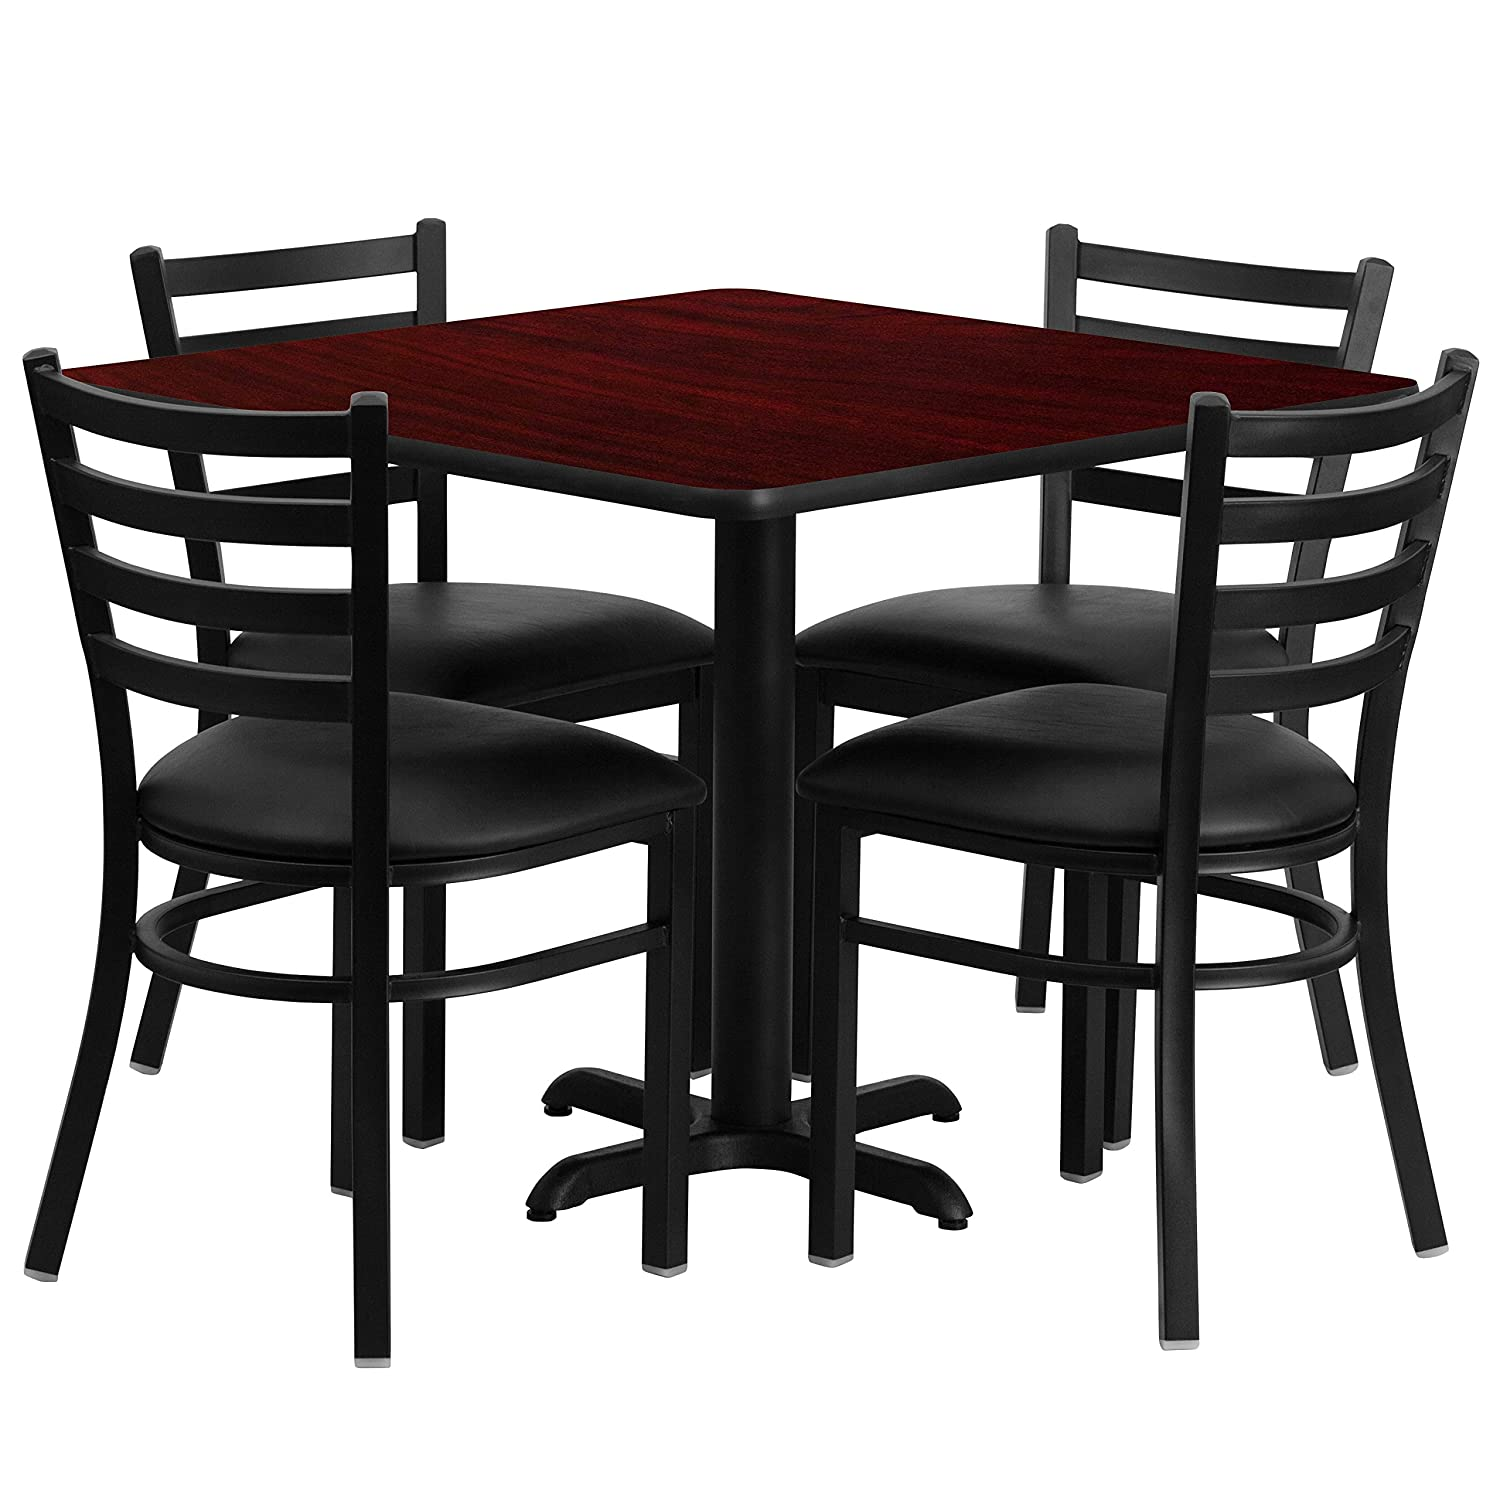 Amazon.com   Flash Furniture 36u0027u0027 Square Black Laminate Table Set With 4 Ladder  Back Metal Chairs   Black Vinyl Seat   Table U0026 Chair Sets